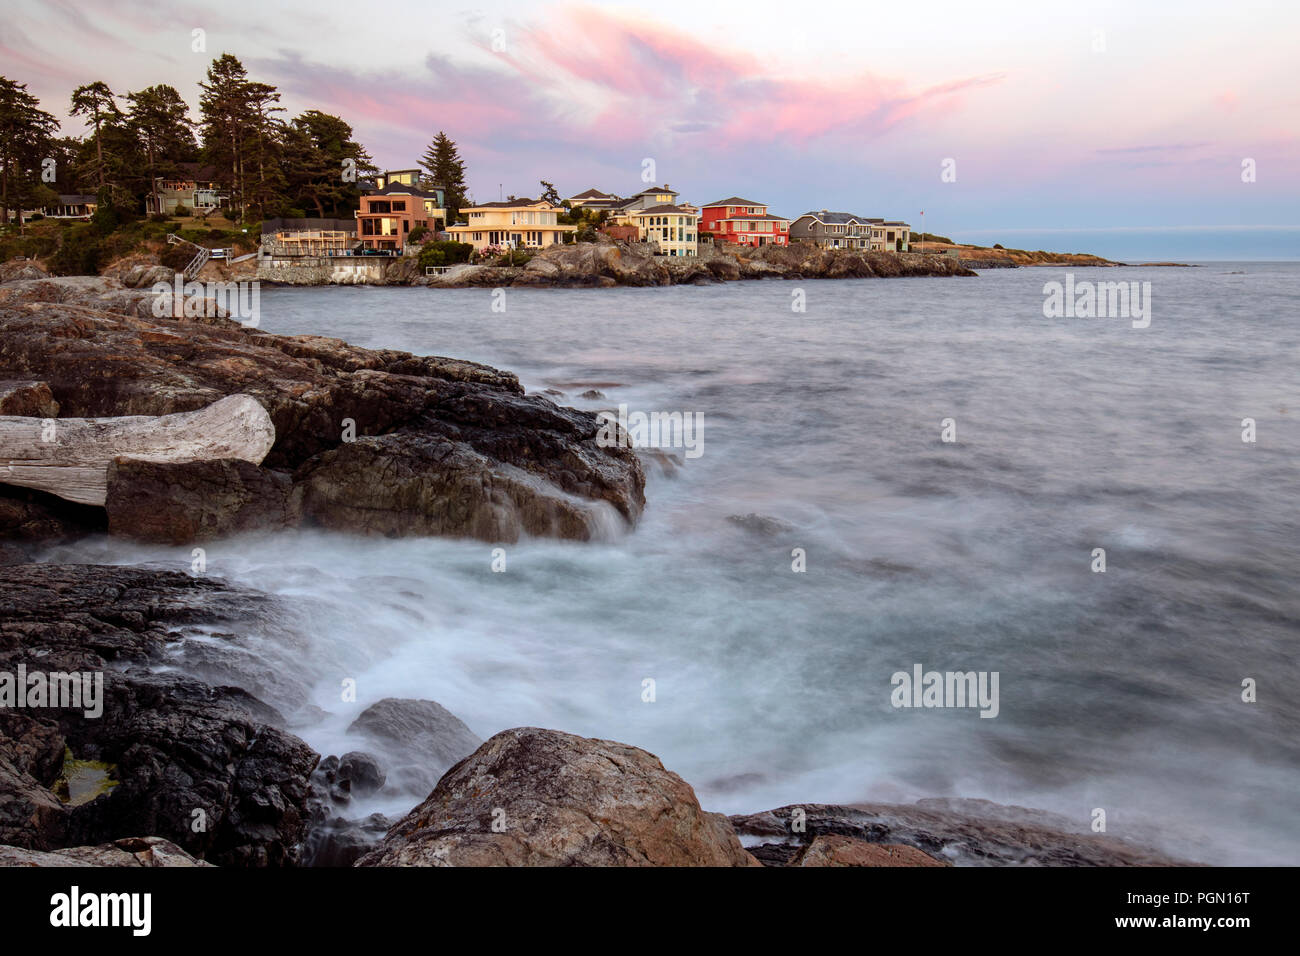 View from Saxe Point Park - Esquimalt, near Victoria, Vancouver Island, British Columbia, Canada - Stock Image